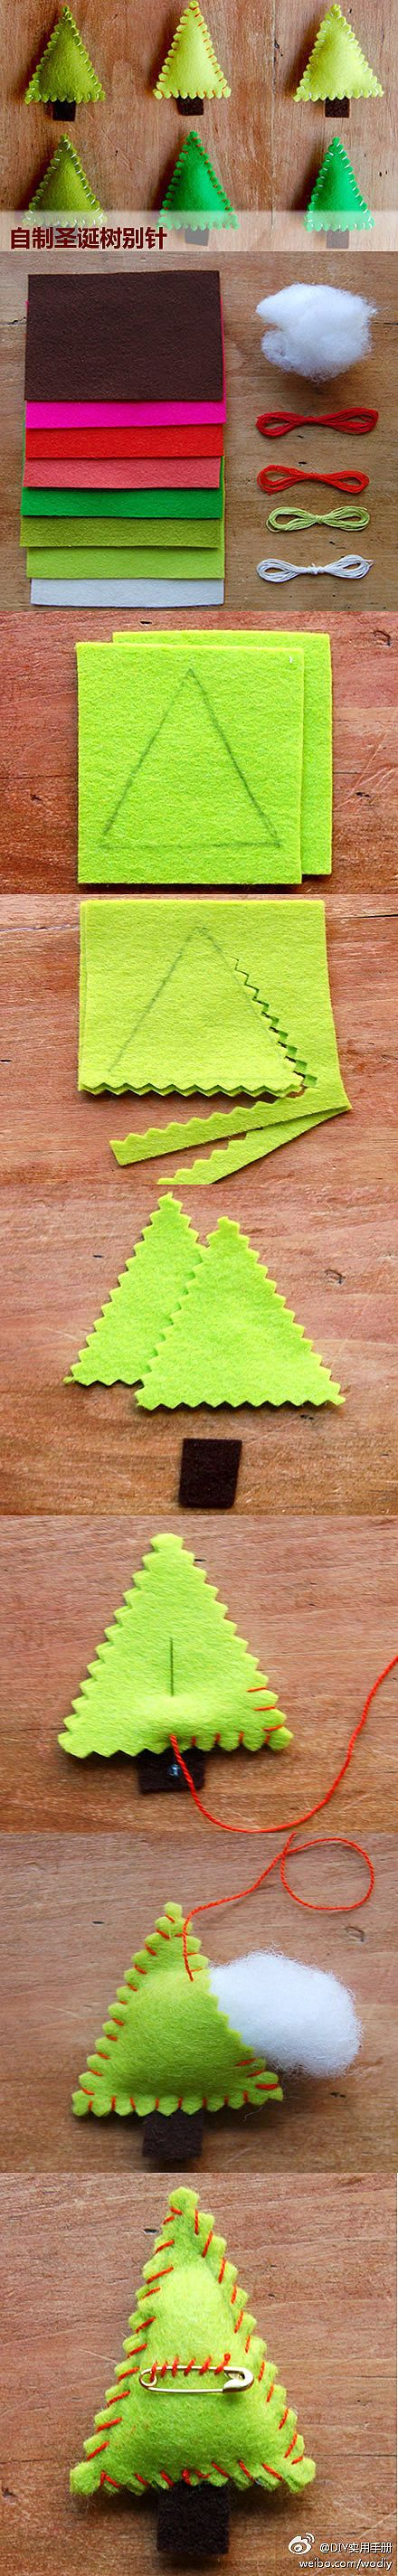 How to make cute Christmas tree clothpin step by step DIY tutorial instructions / How To Instructions